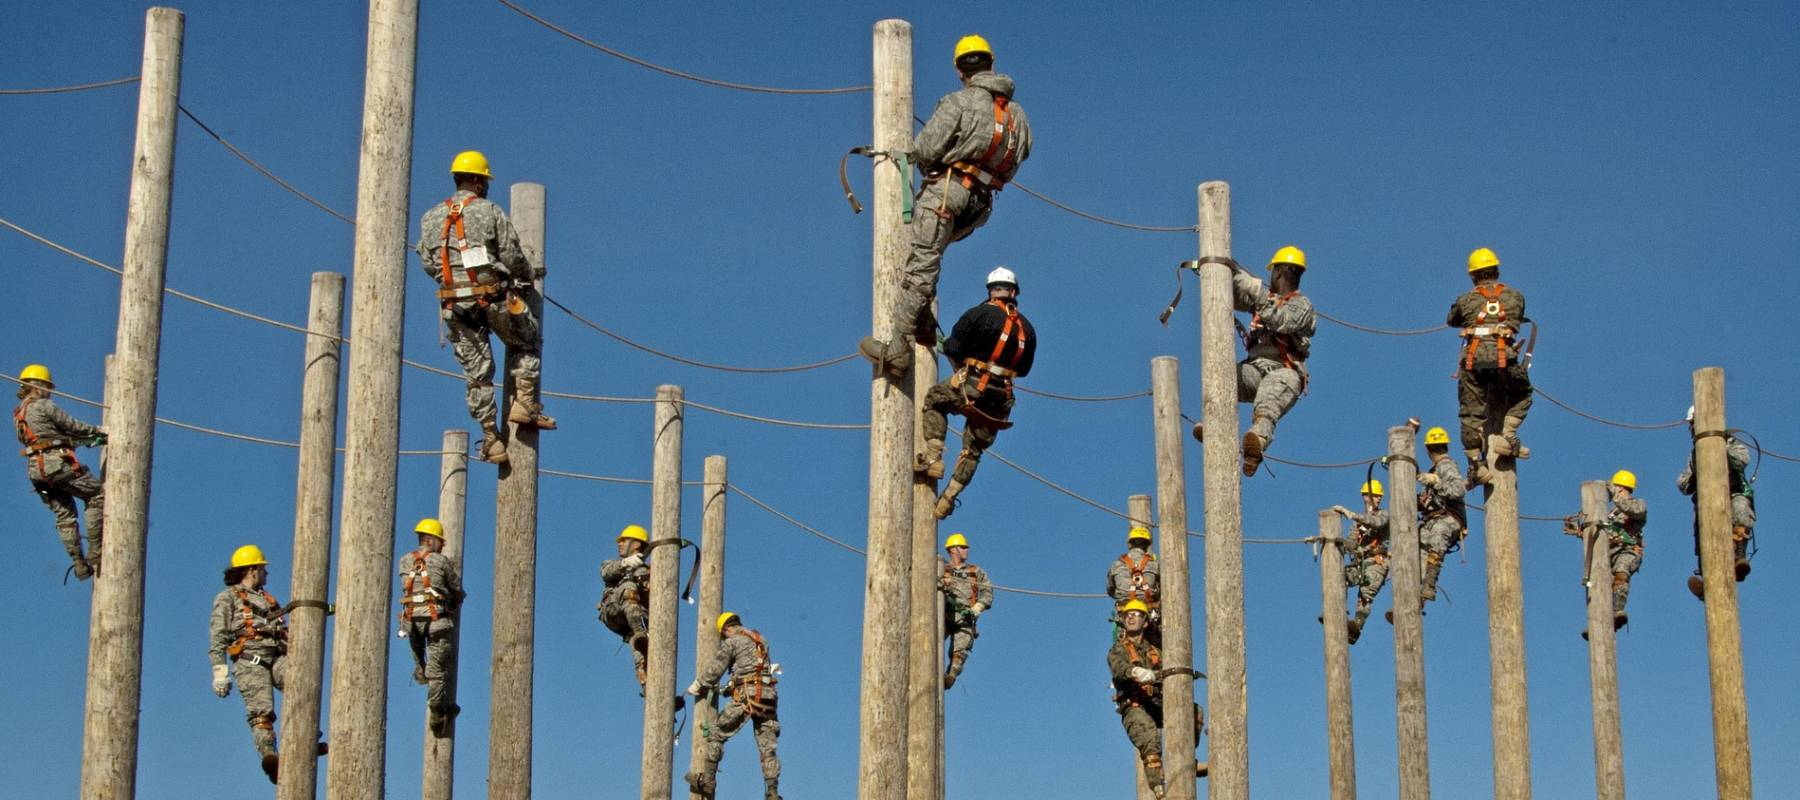 Workers in training on electrical poles